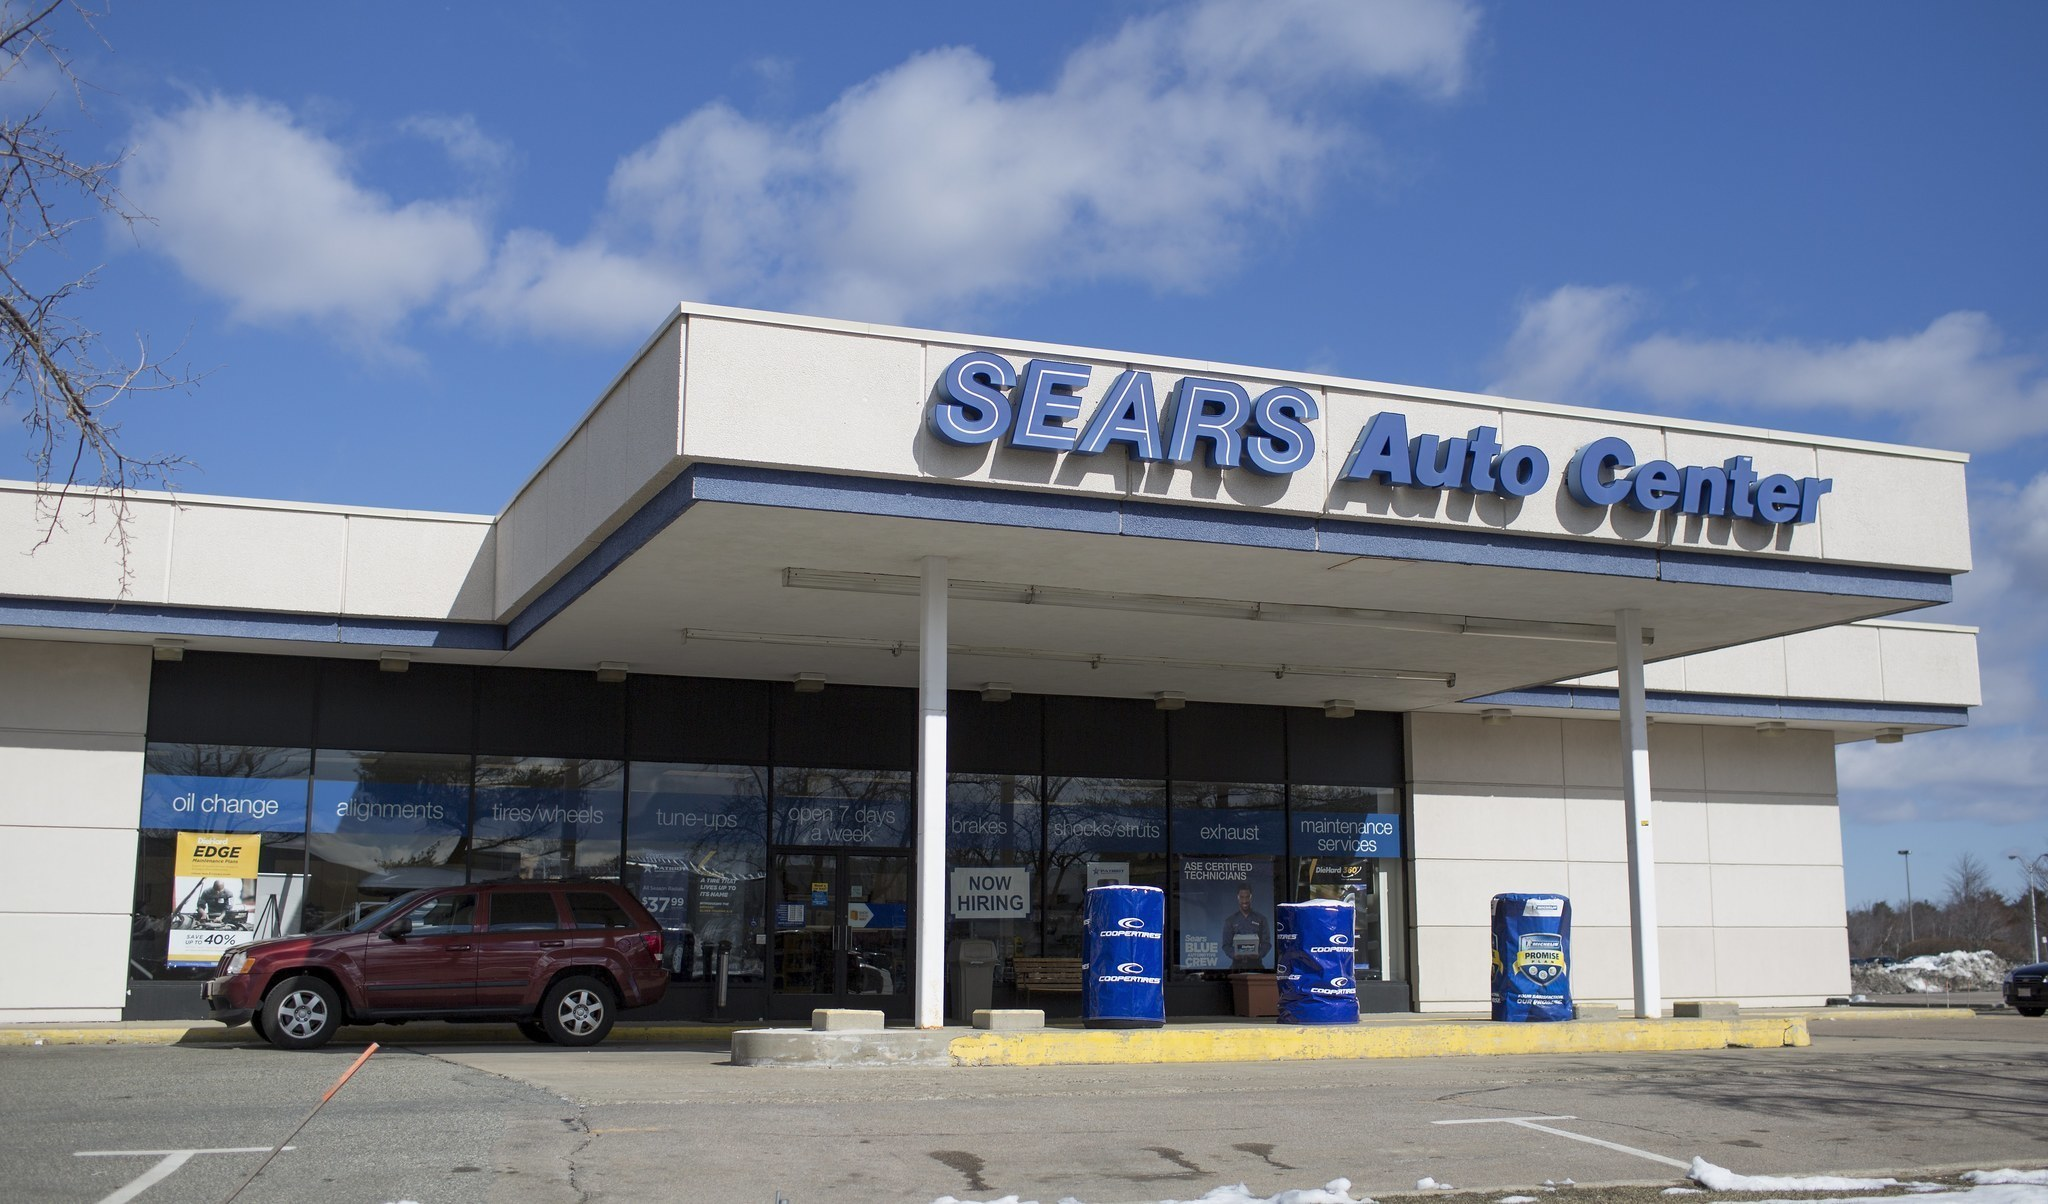 sears to close 50 auto centers 92 kmart pharmacies to cut costs the morning call. Black Bedroom Furniture Sets. Home Design Ideas